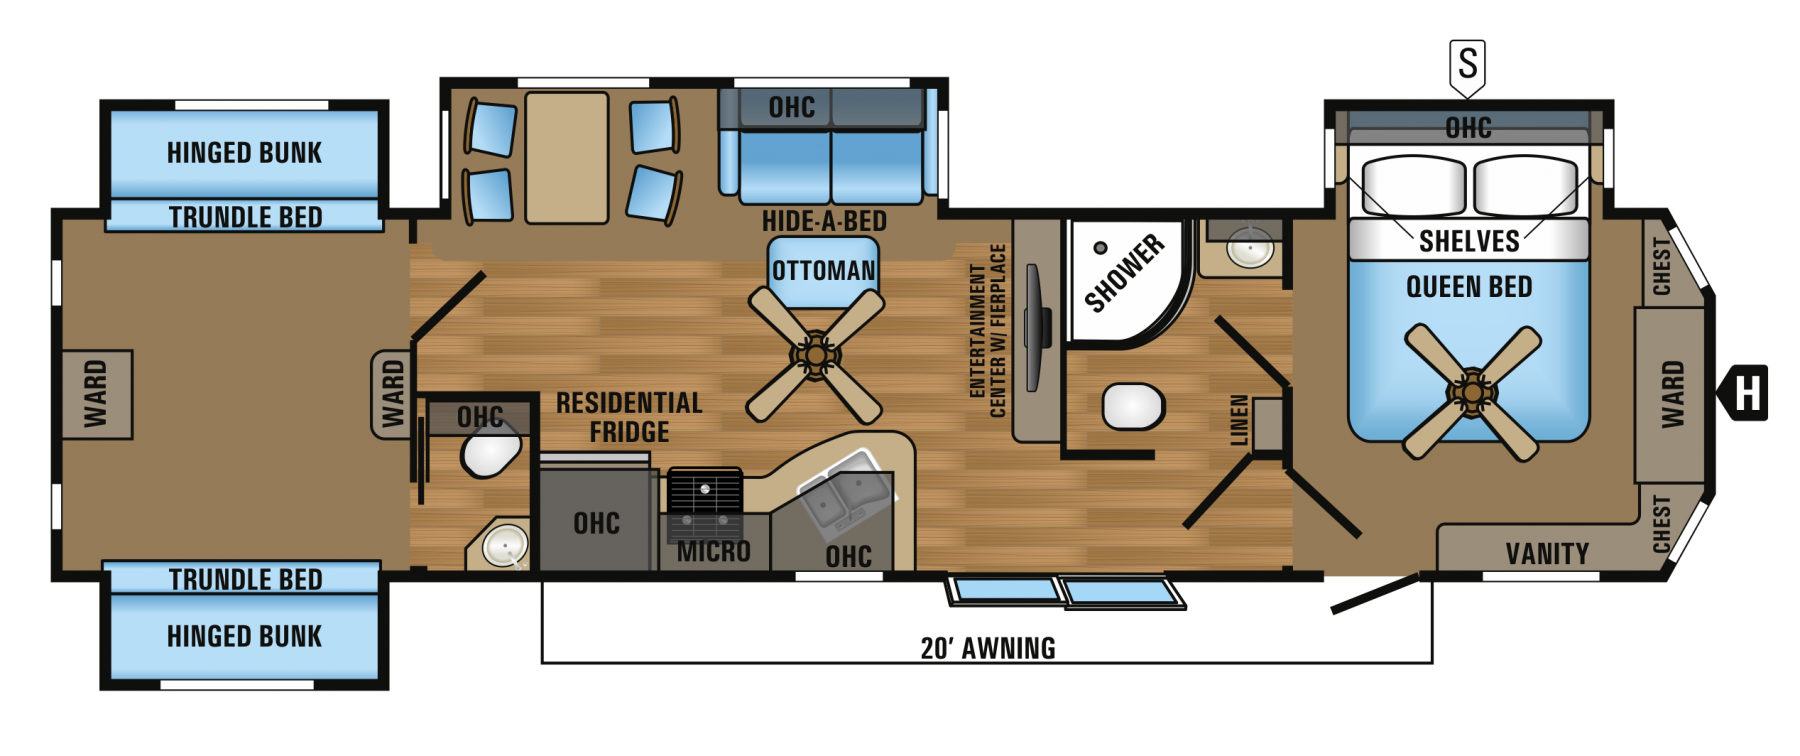 Travel Trailer 2 Bedroom 2 Bathroom Will Actually Fit 4 6 Kids And 2 Parents Travel Trailer Floor Plans Jayco Travel Trailers Rv Travel Trailers